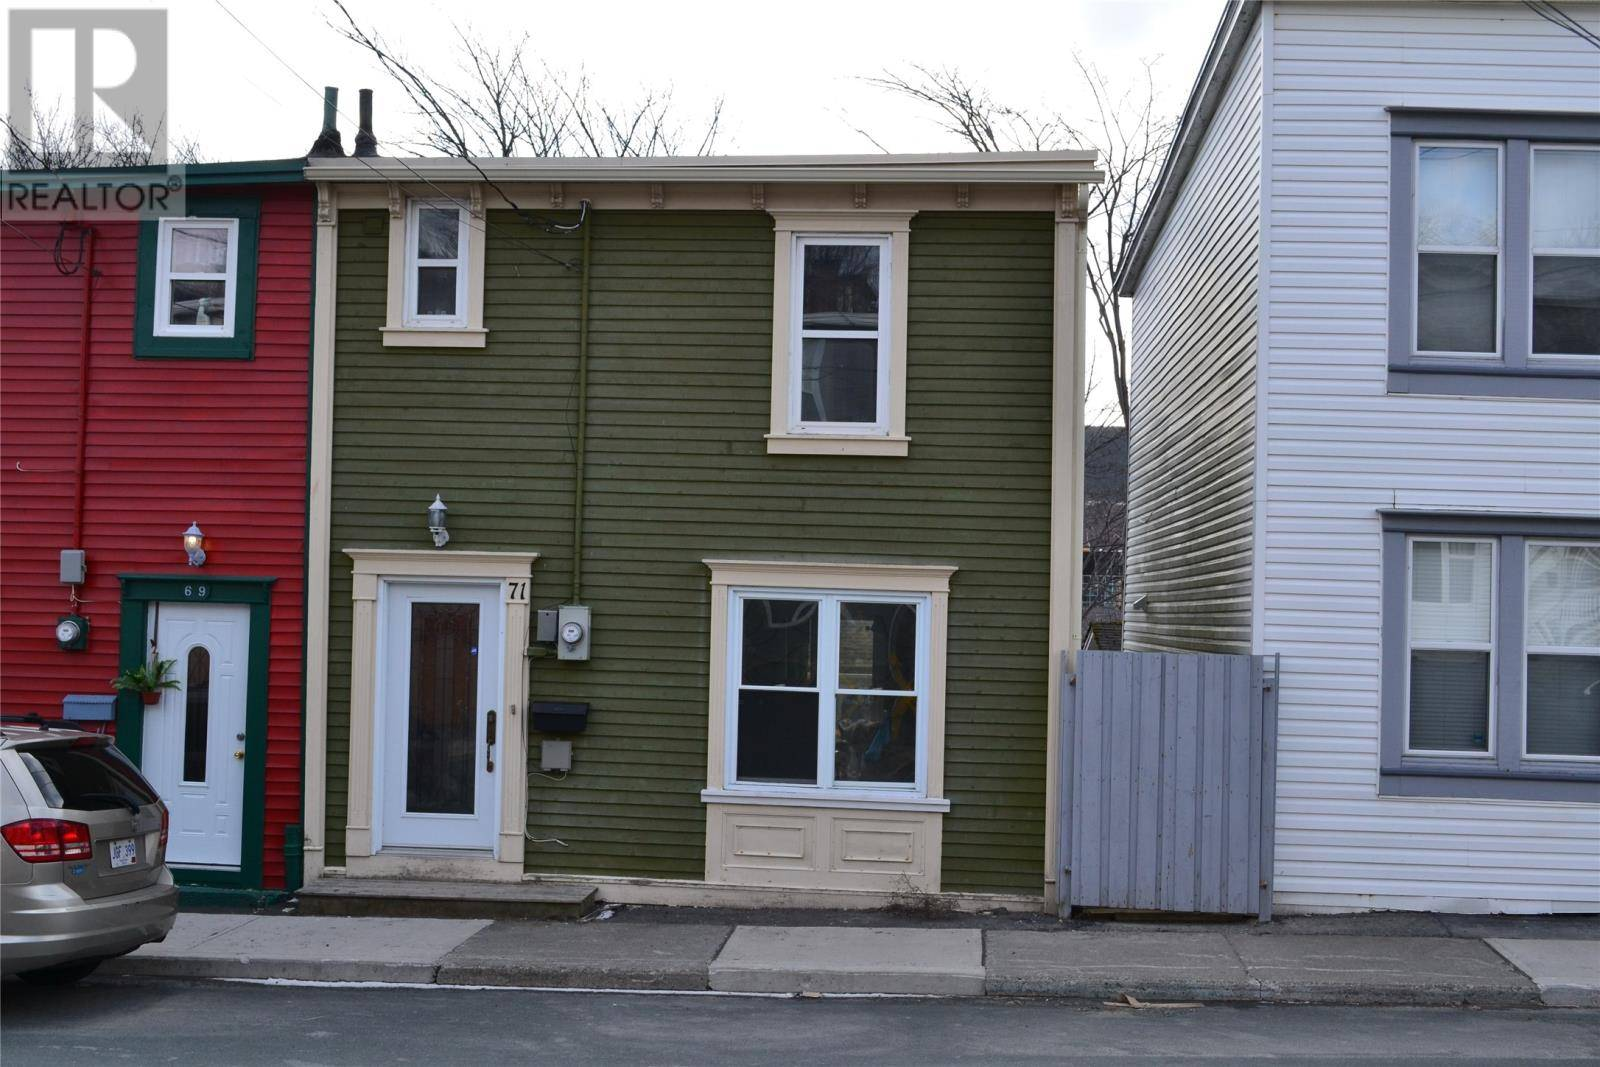 House for sale at 71 Monroe St St. John's Newfoundland - MLS: 1200560